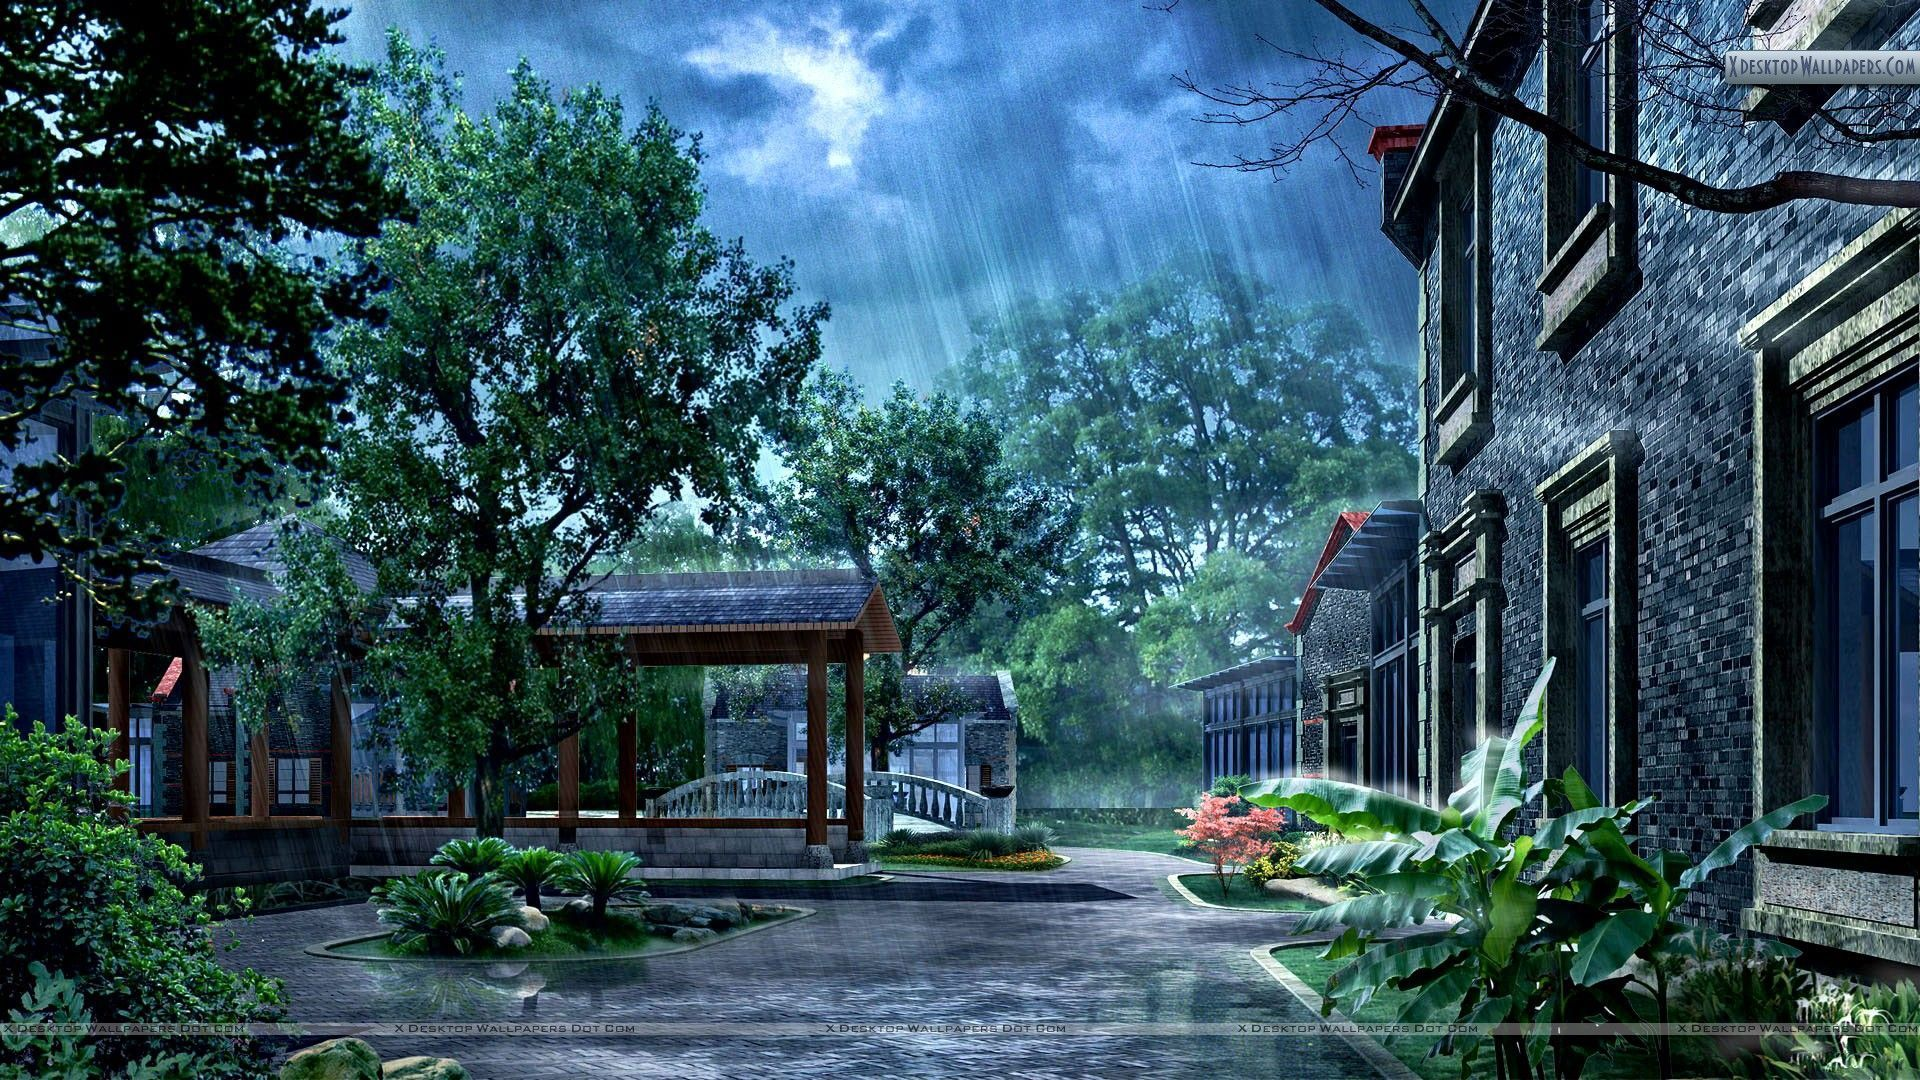 Best Wallpaper High Quality Rainy Day - a49ea86170935c8fe6277021823fd881  Pictures_44654.jpg